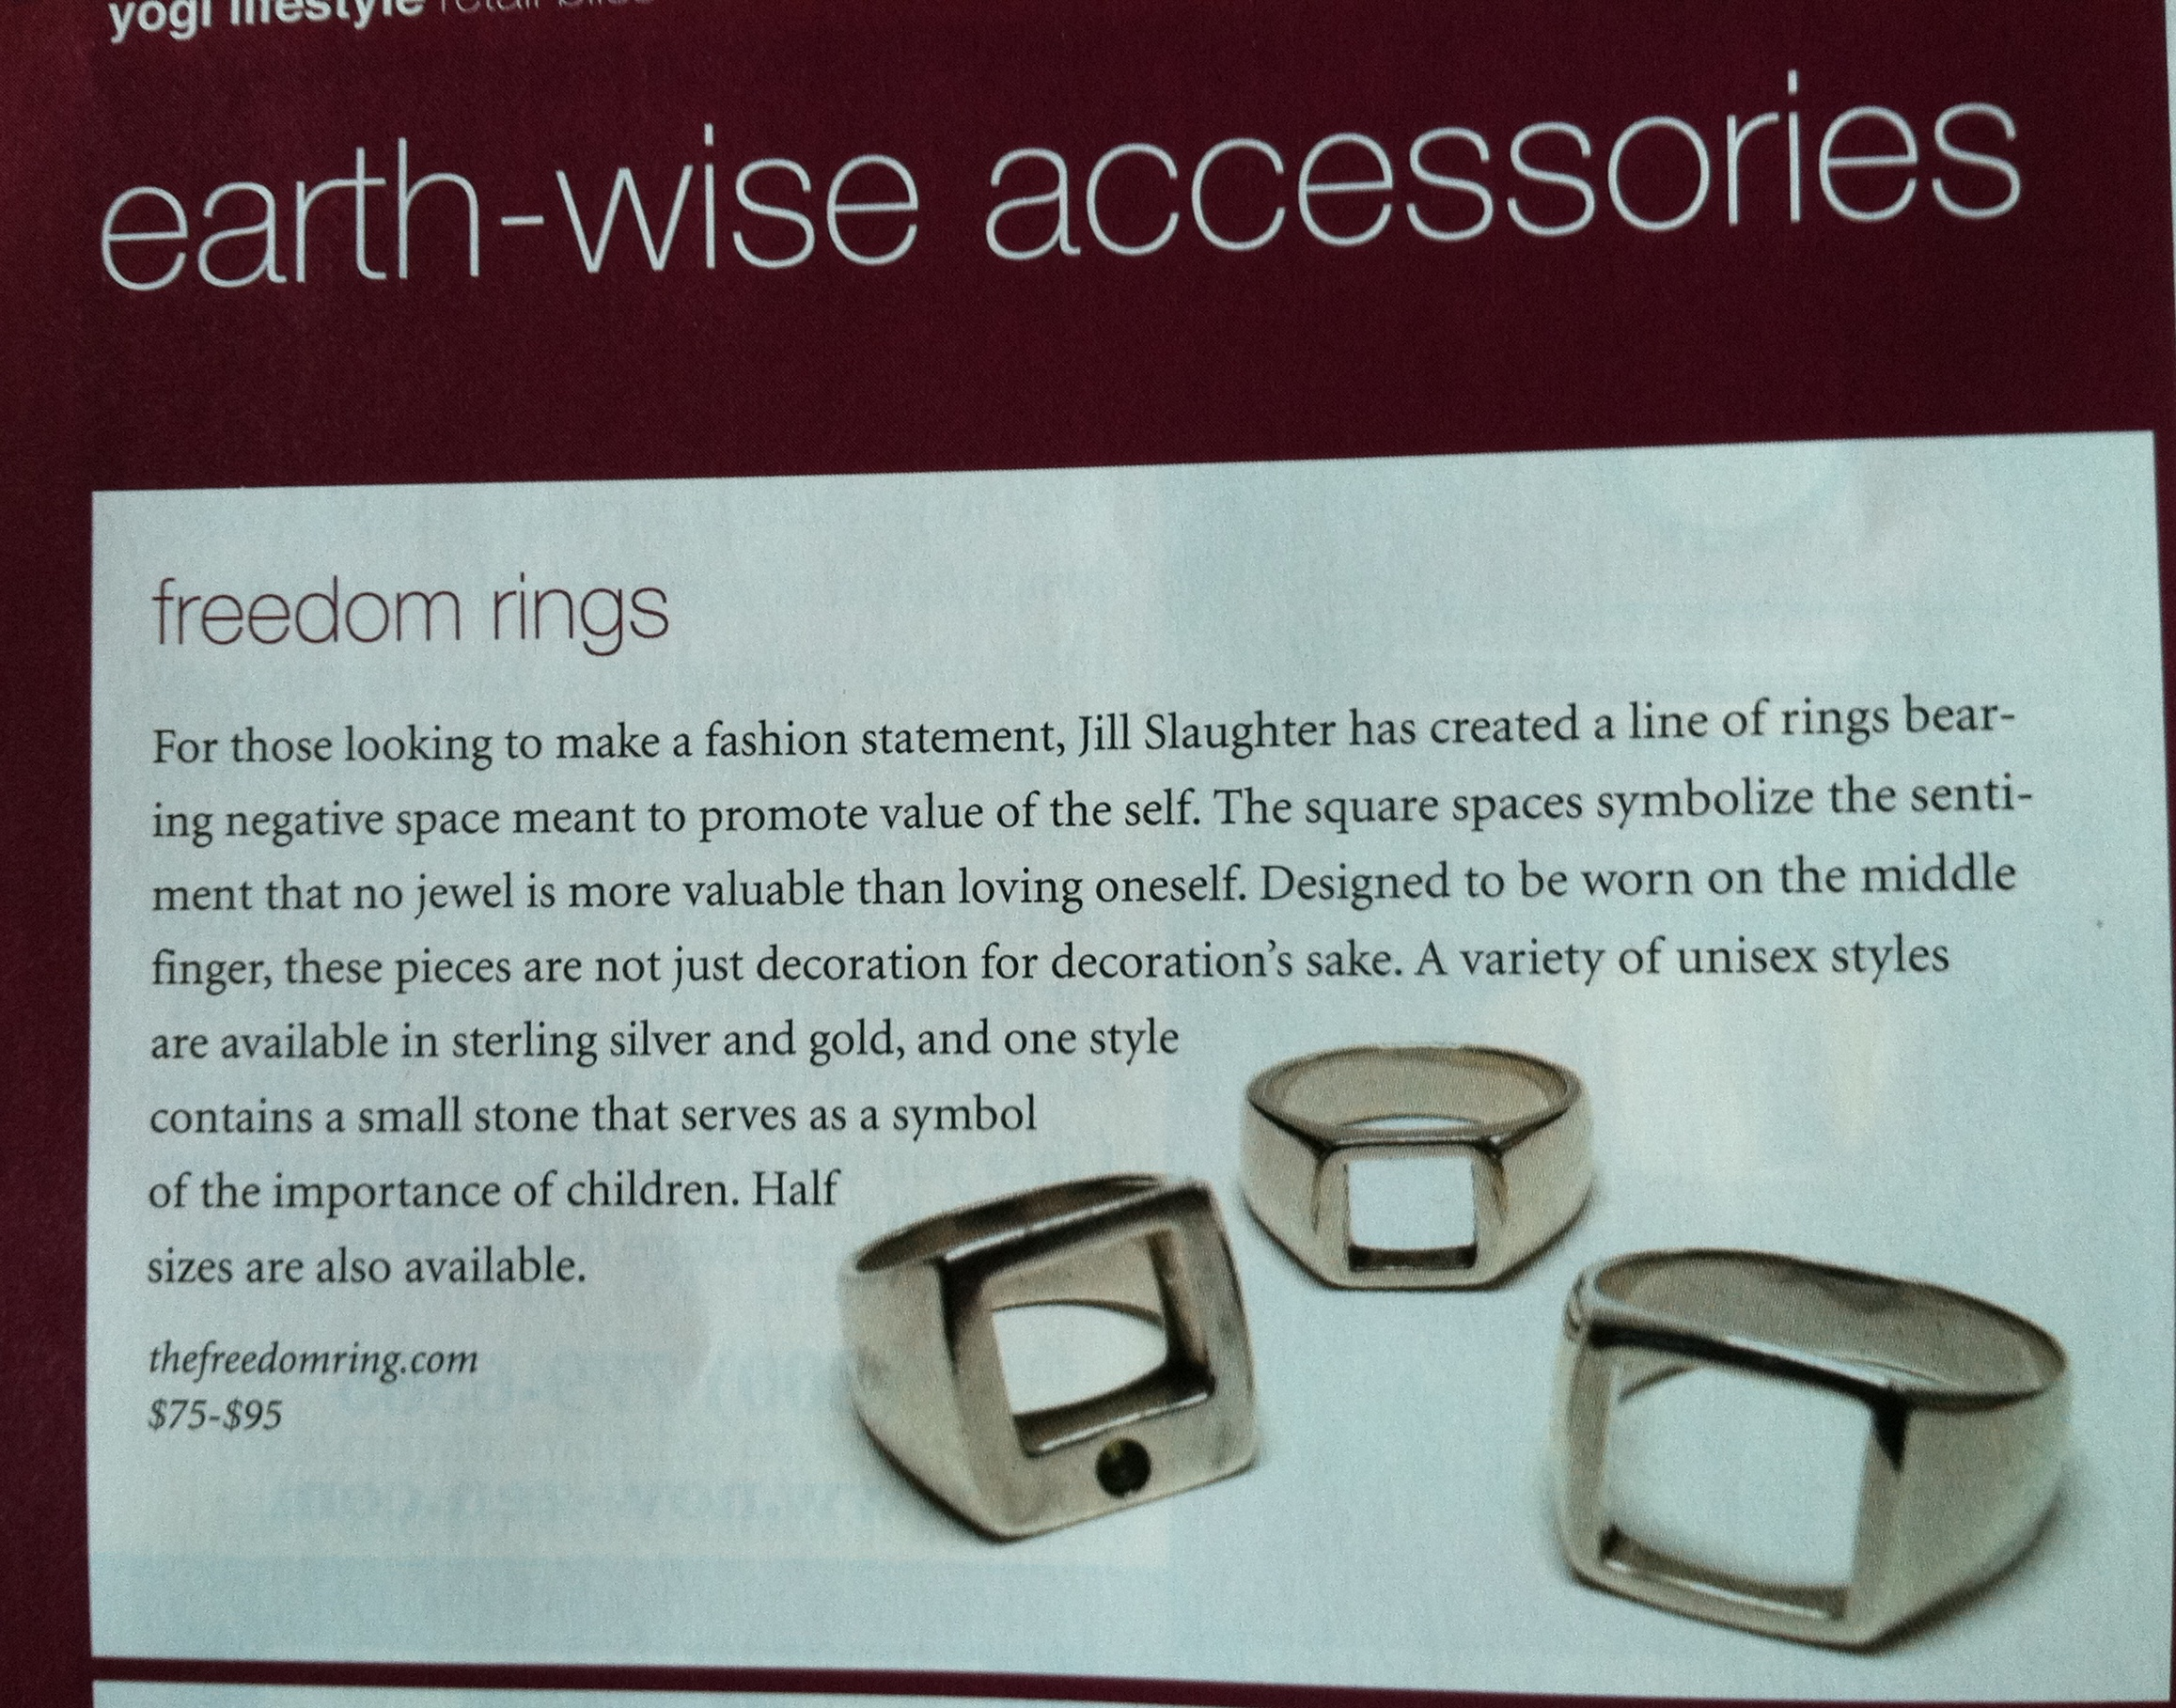 The Freedom Ring featured in the Los Angeles Yogi Times